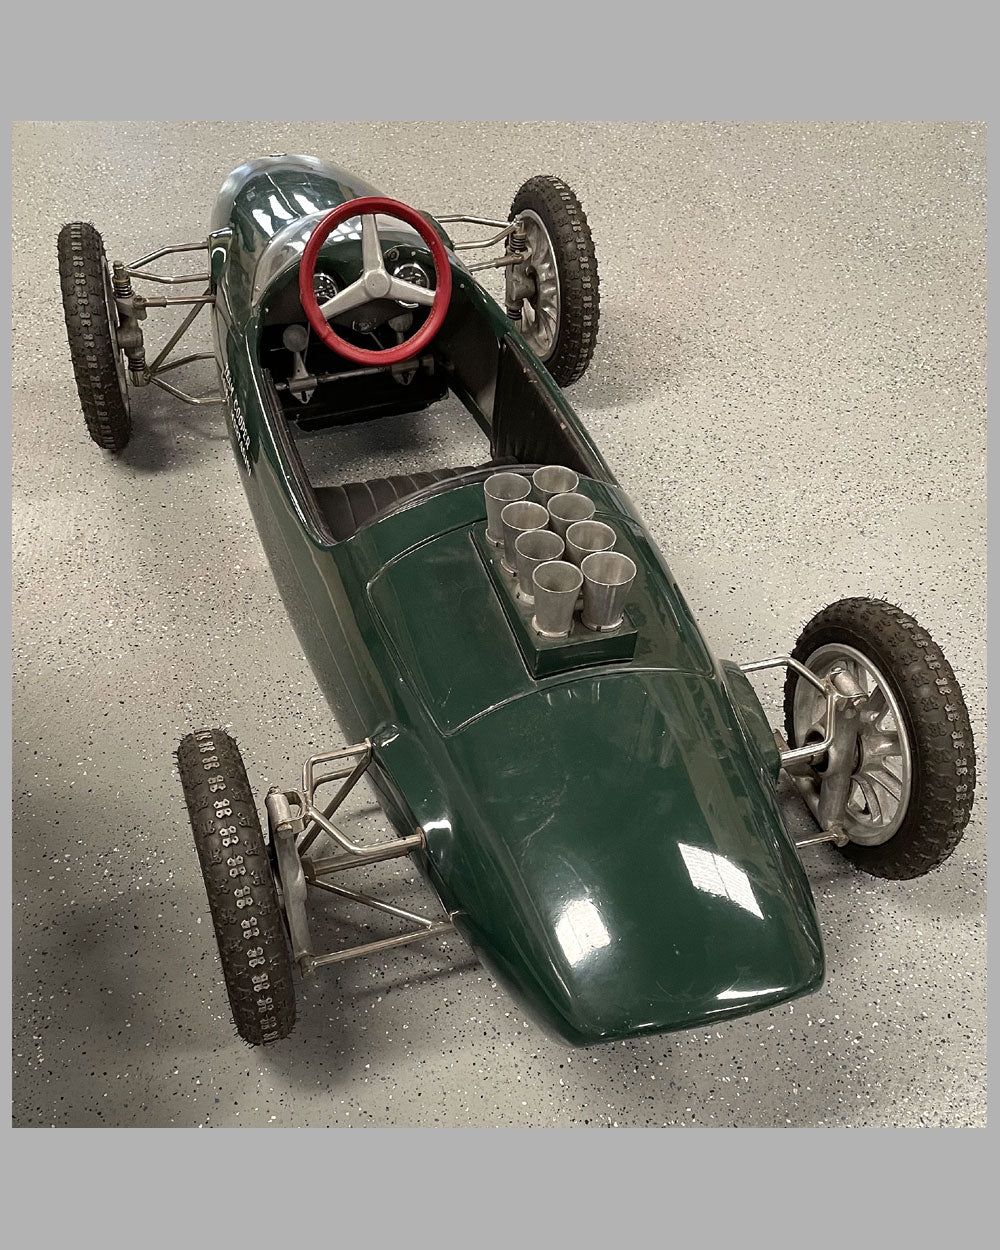 Early 1960 Cooper F1 motorized child car